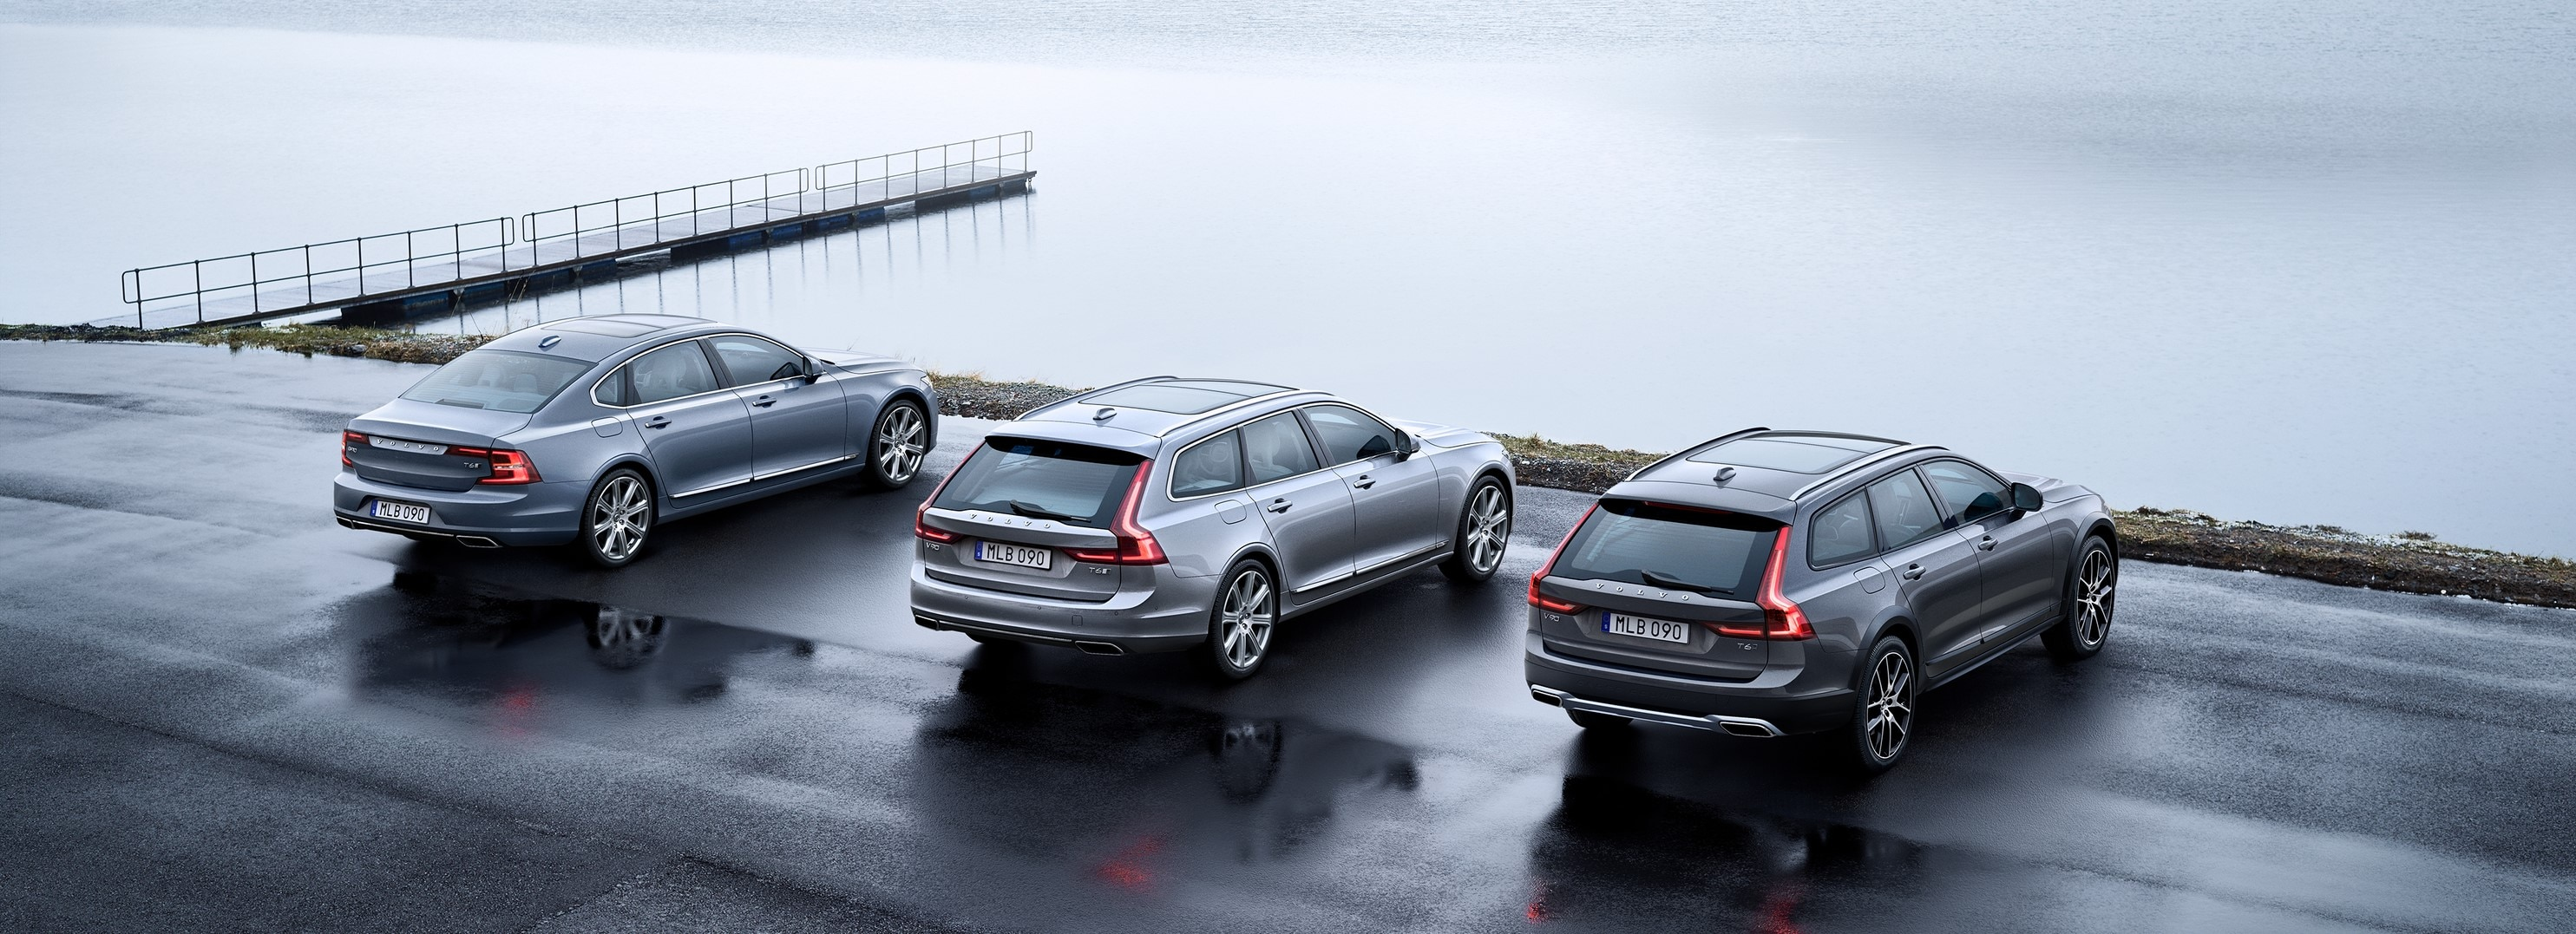 Volvo T5 vs T6 Engine: What's the Difference? | DARCARS Volvo Cars | Volvo T6 Engine Breakdown |  | DARCARS Volvo Cars